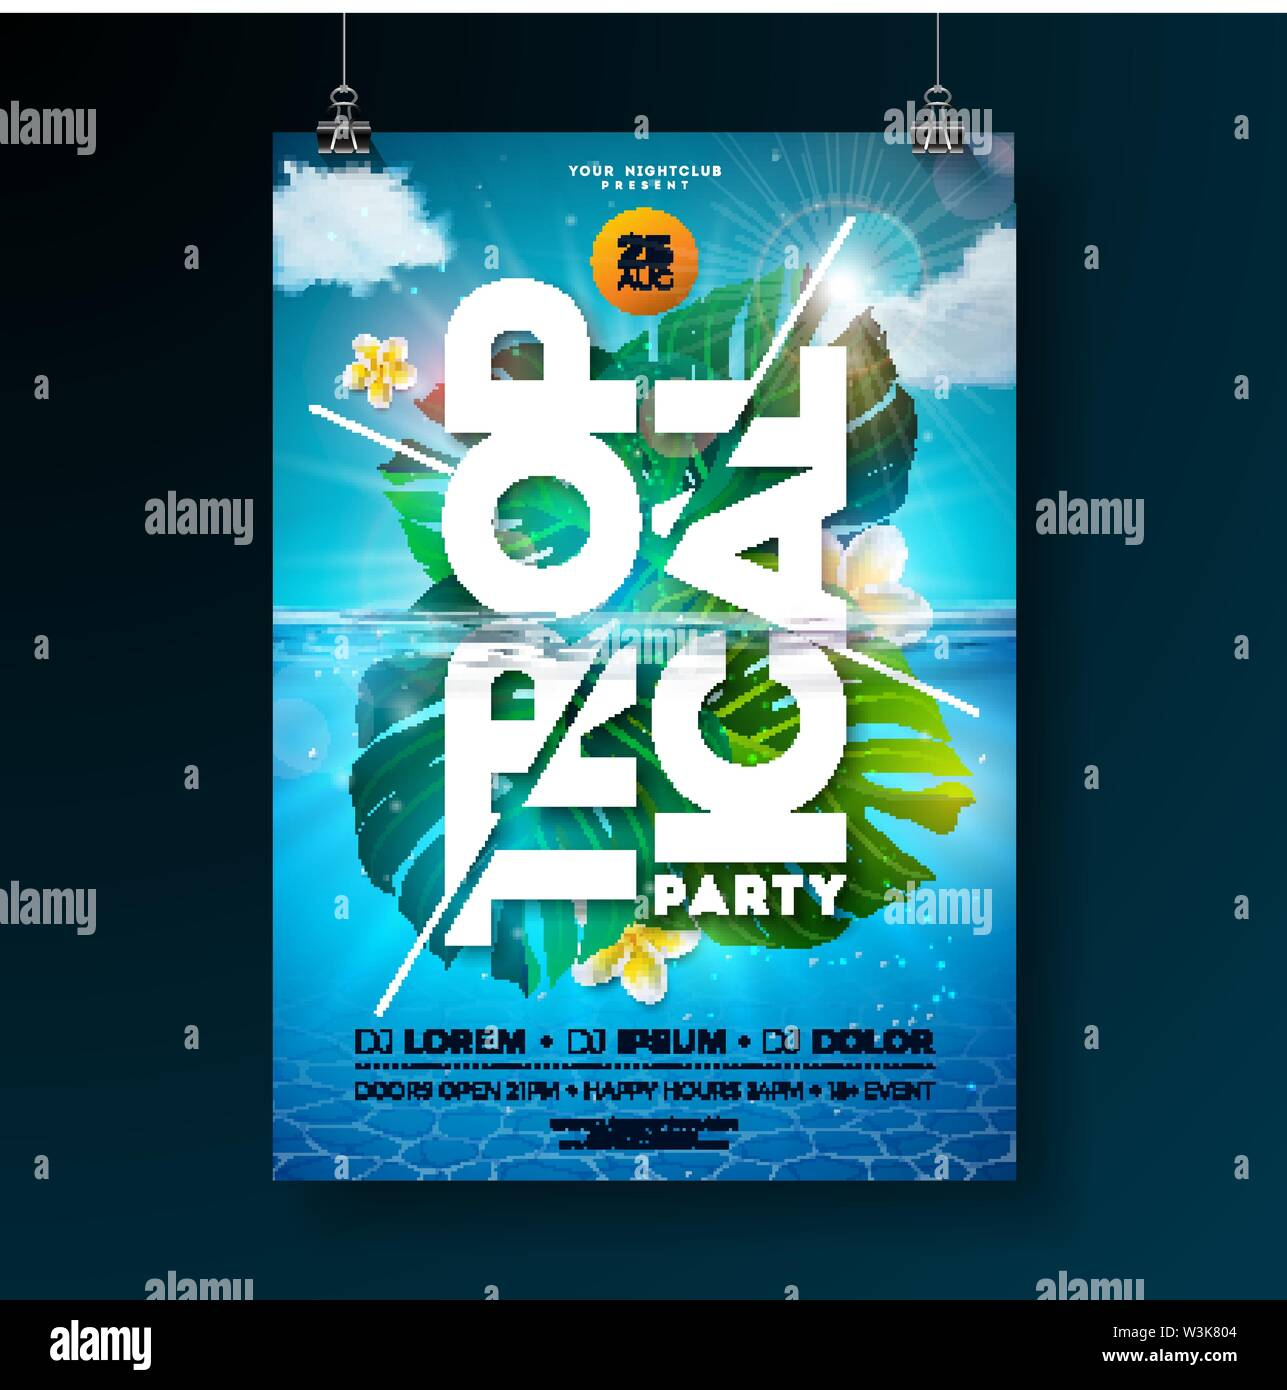 Tropical Summer Party Flyer Design Template with exotic palm leaves and flower on blue underwater ocean background. Vector holiday illustration for - Stock Image